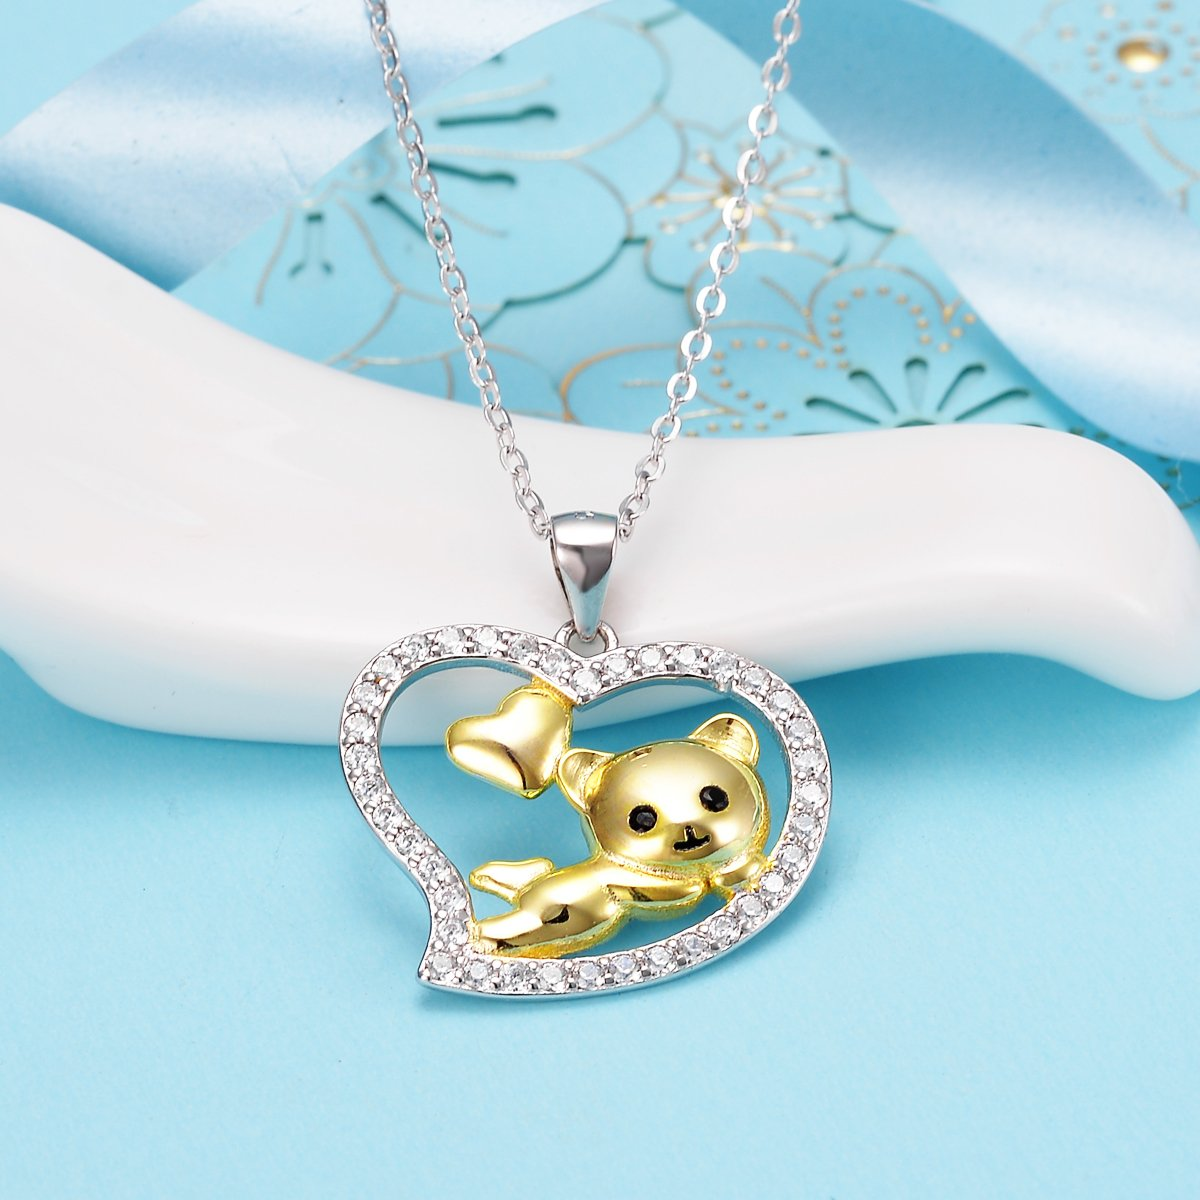 EleQueen 925 Sterling Silver Clear Cubic Zirconia Double Love Open Heart Lovely Bear Pendant Necklace